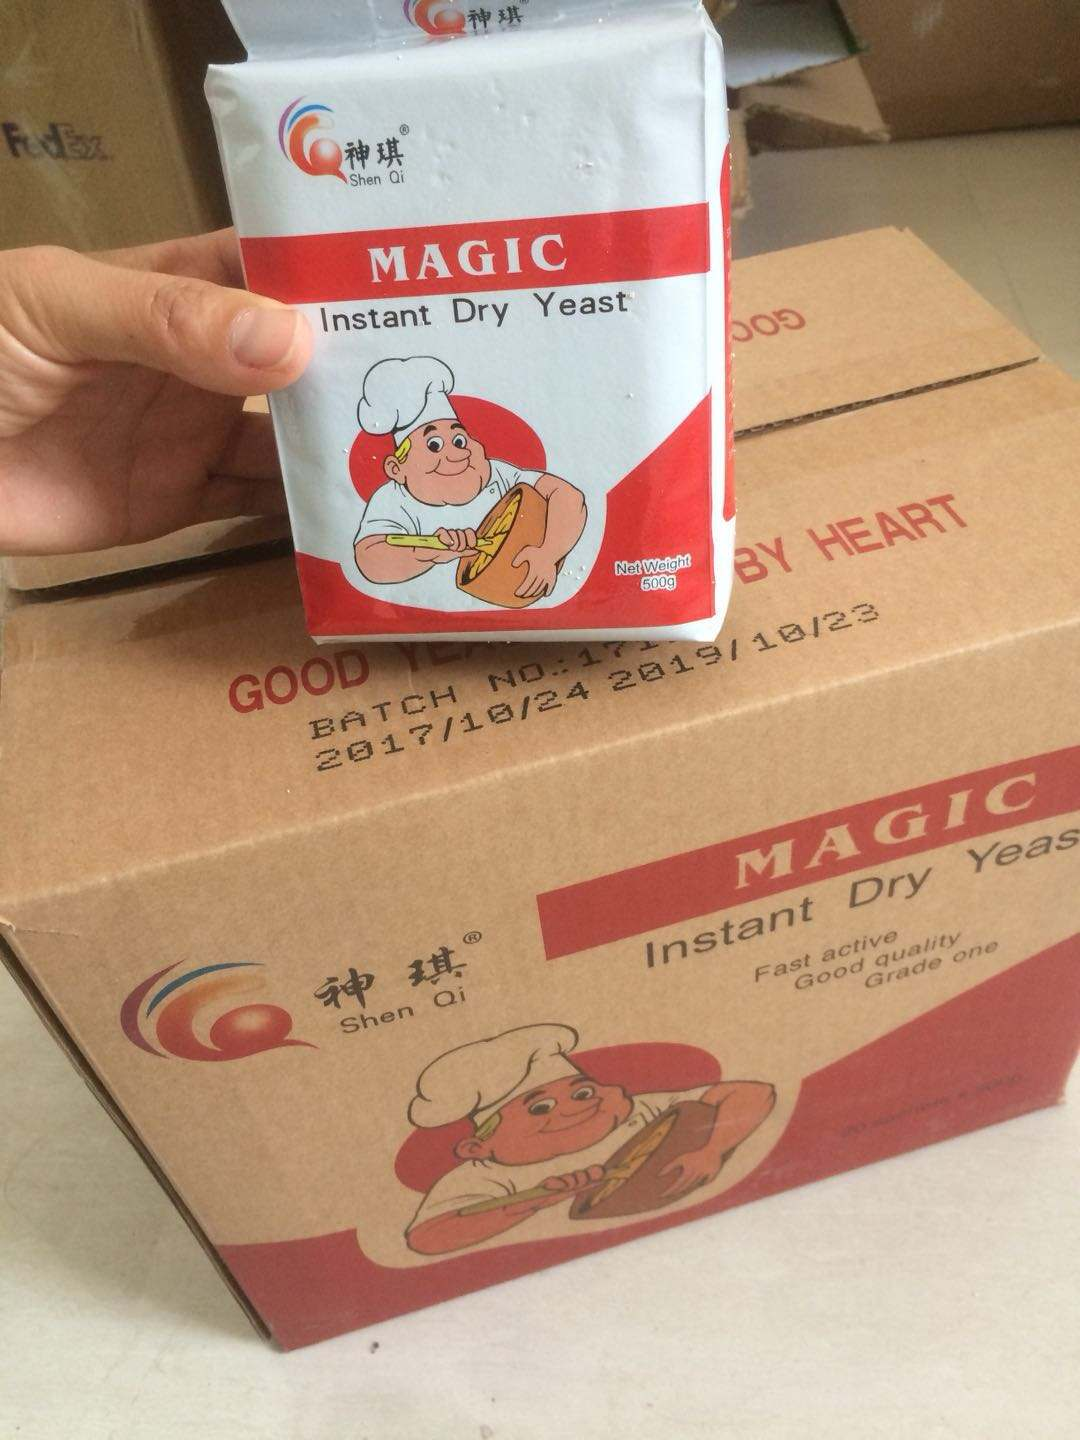 Magic Low Sugar Instant Dry Yeast 500g for bread